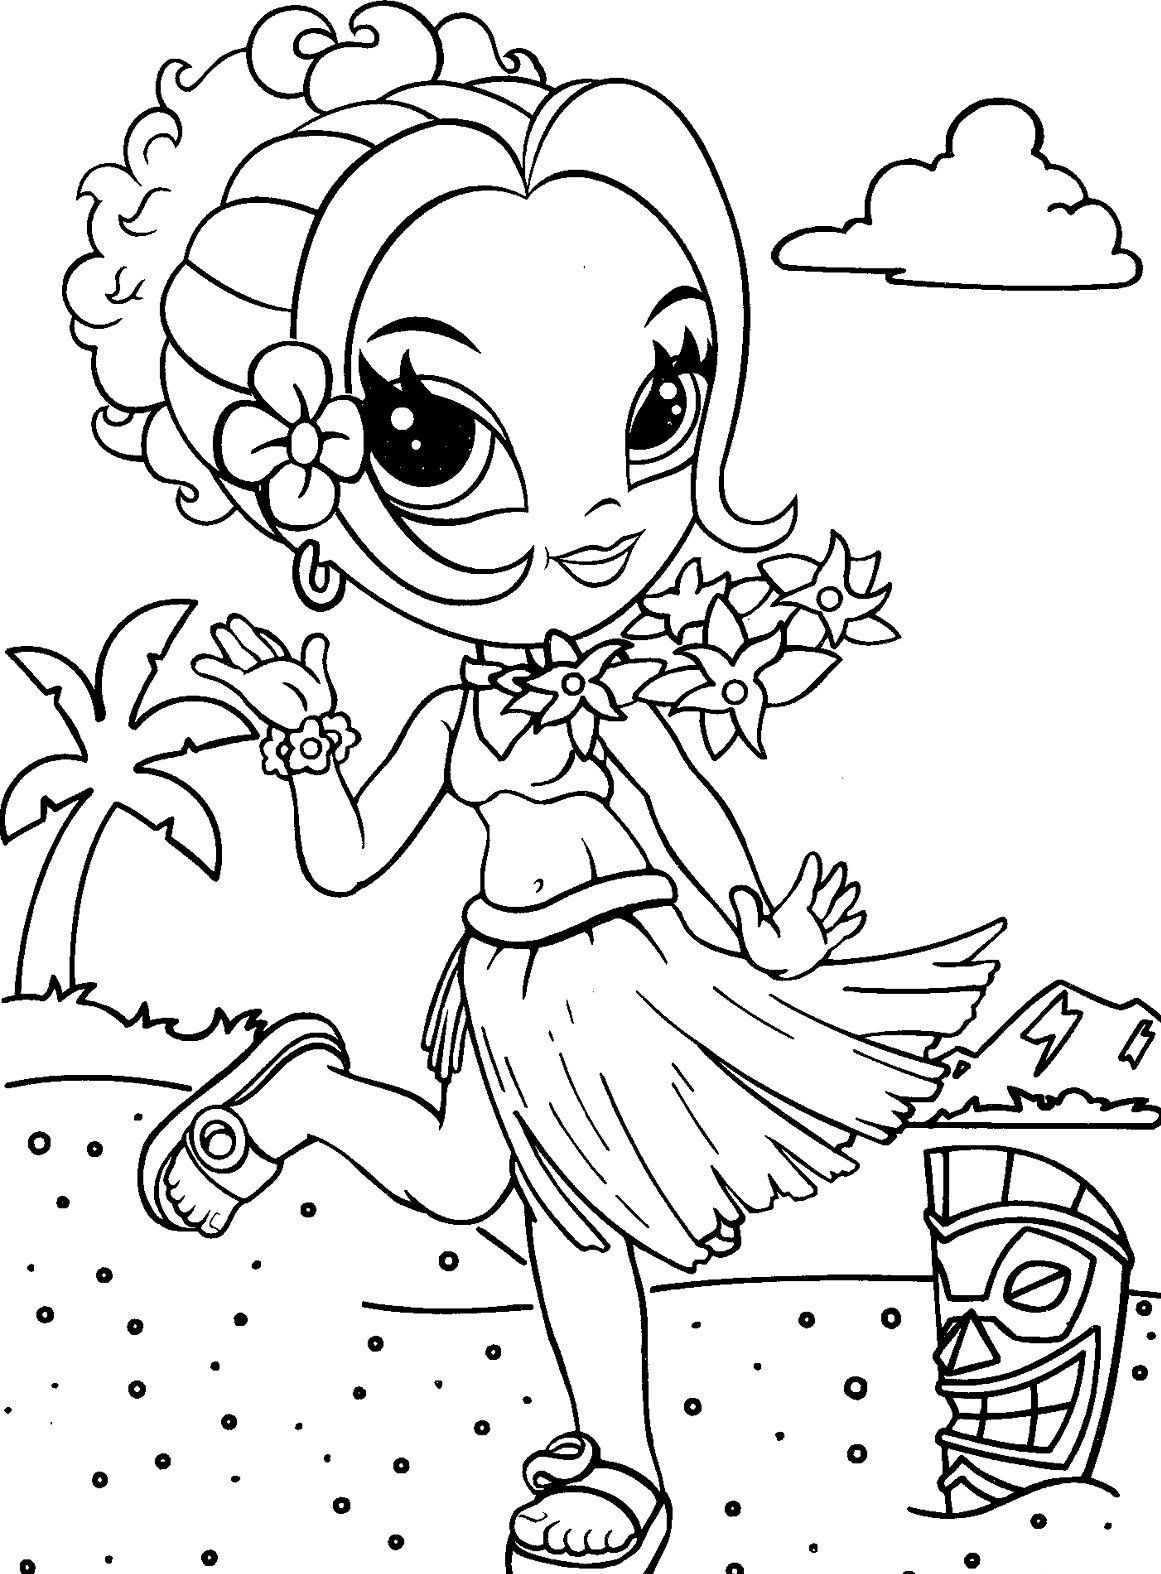 1161x1574 Lisa Frank Coloring Pages To Download And Print For Free Lisa